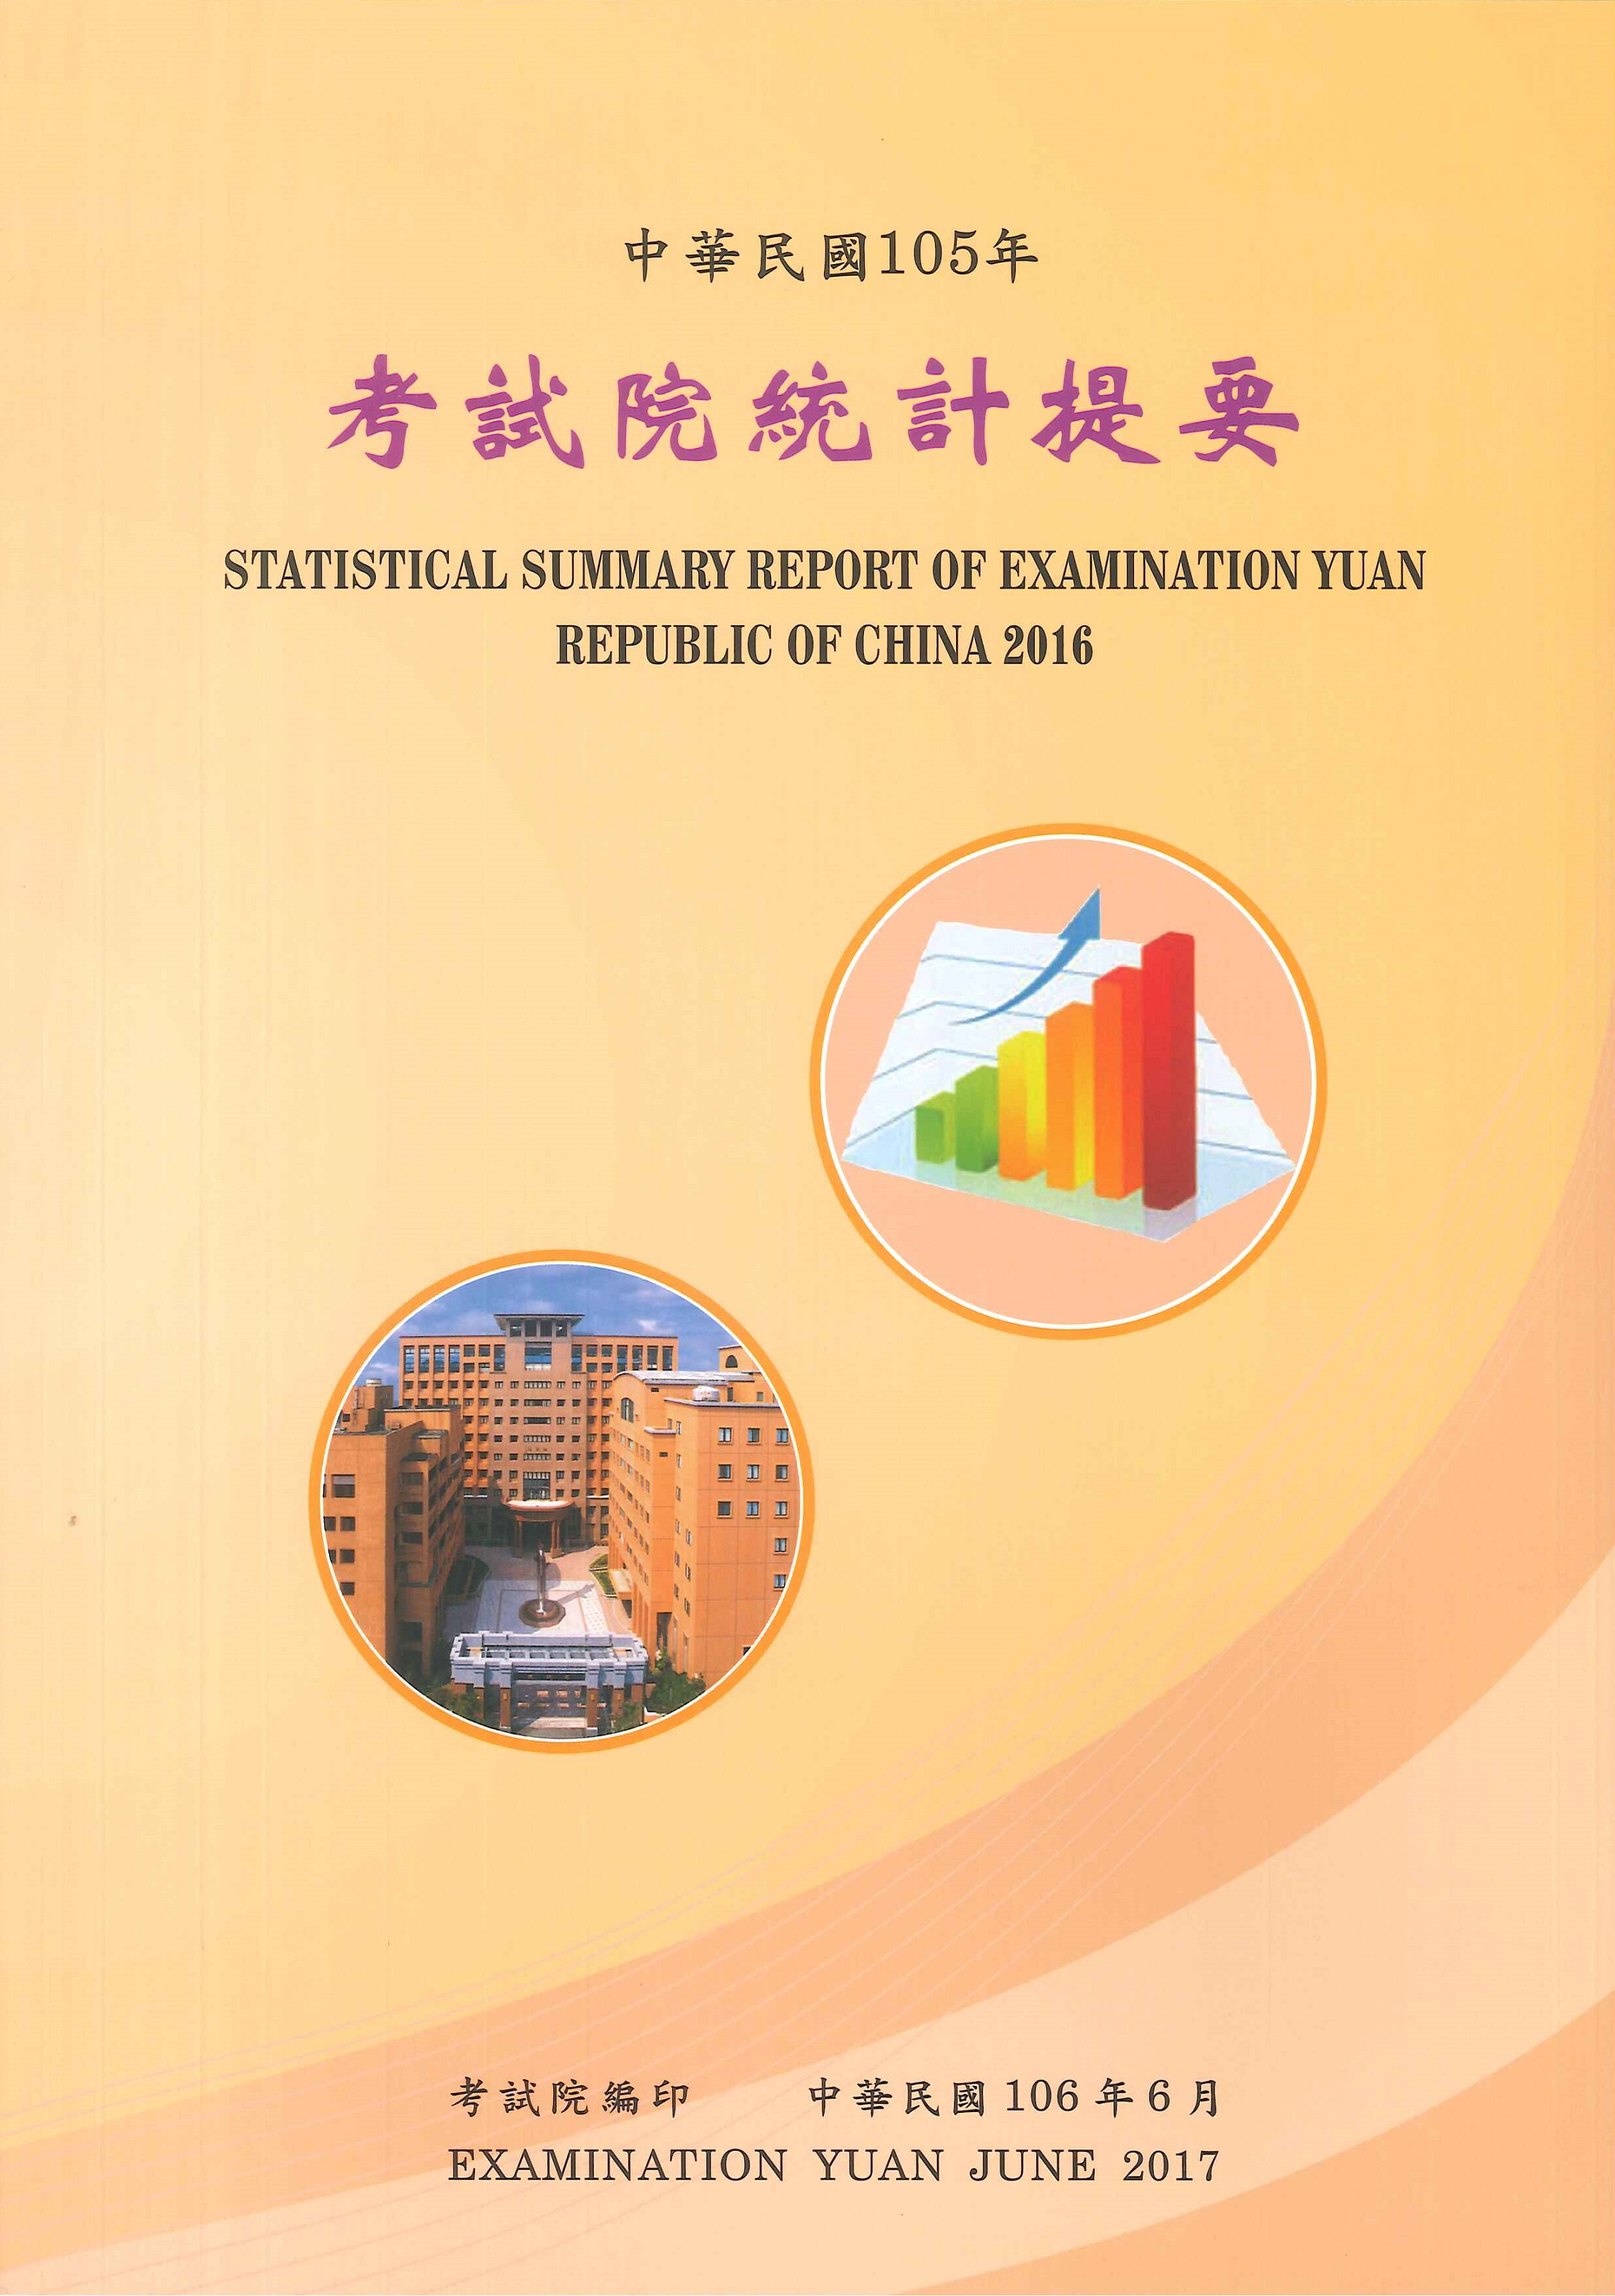 考試院統計提要=Statistical summary report of the Examination Yuan